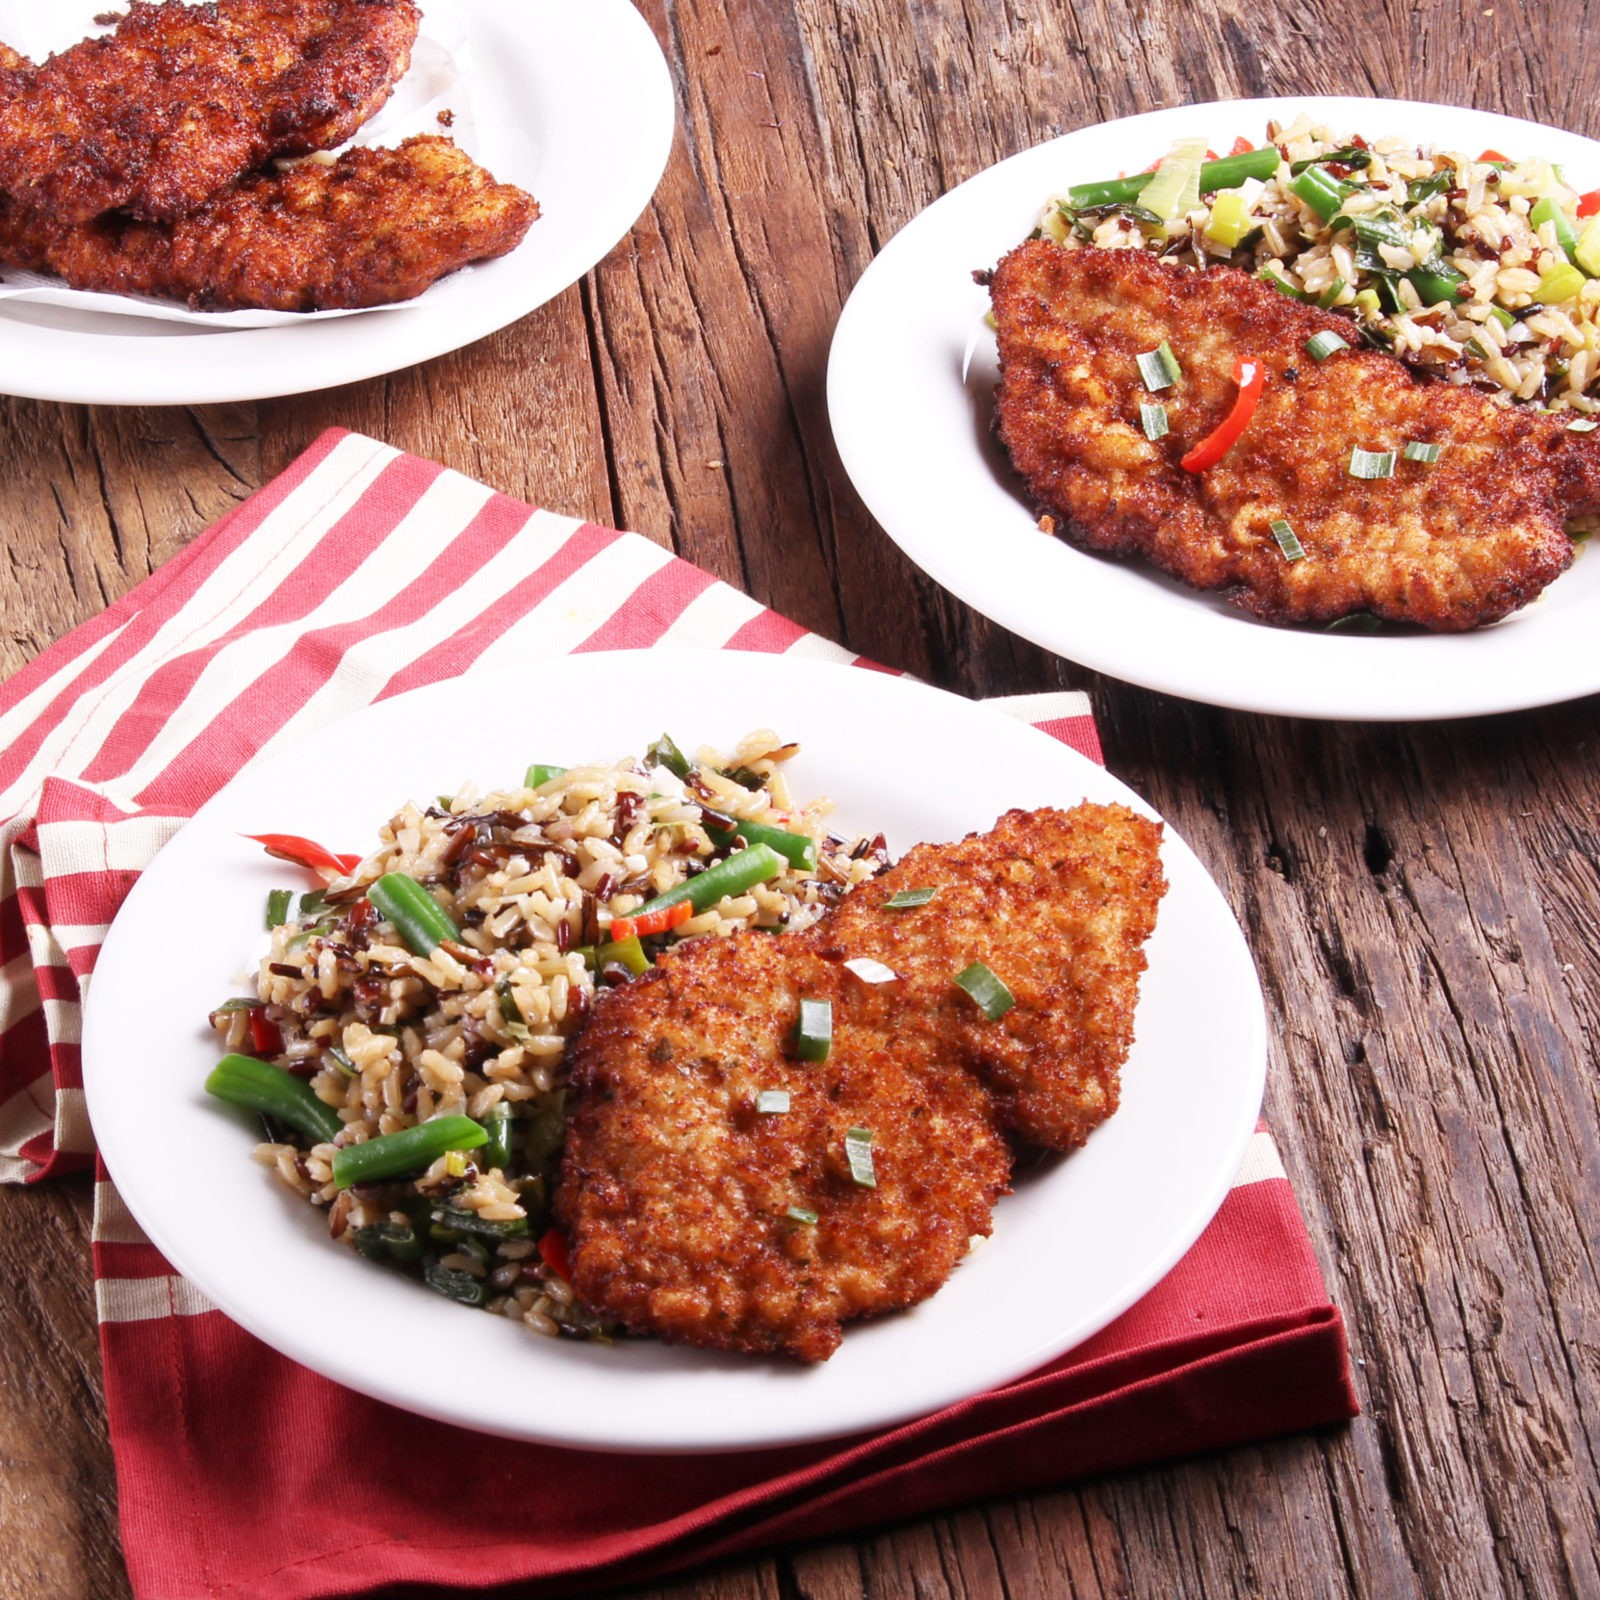 Schnitzel With Buttered Wild Rice And Green Beans - Three Aussie Farmers Lightly Seasoned Pork Schnitzel